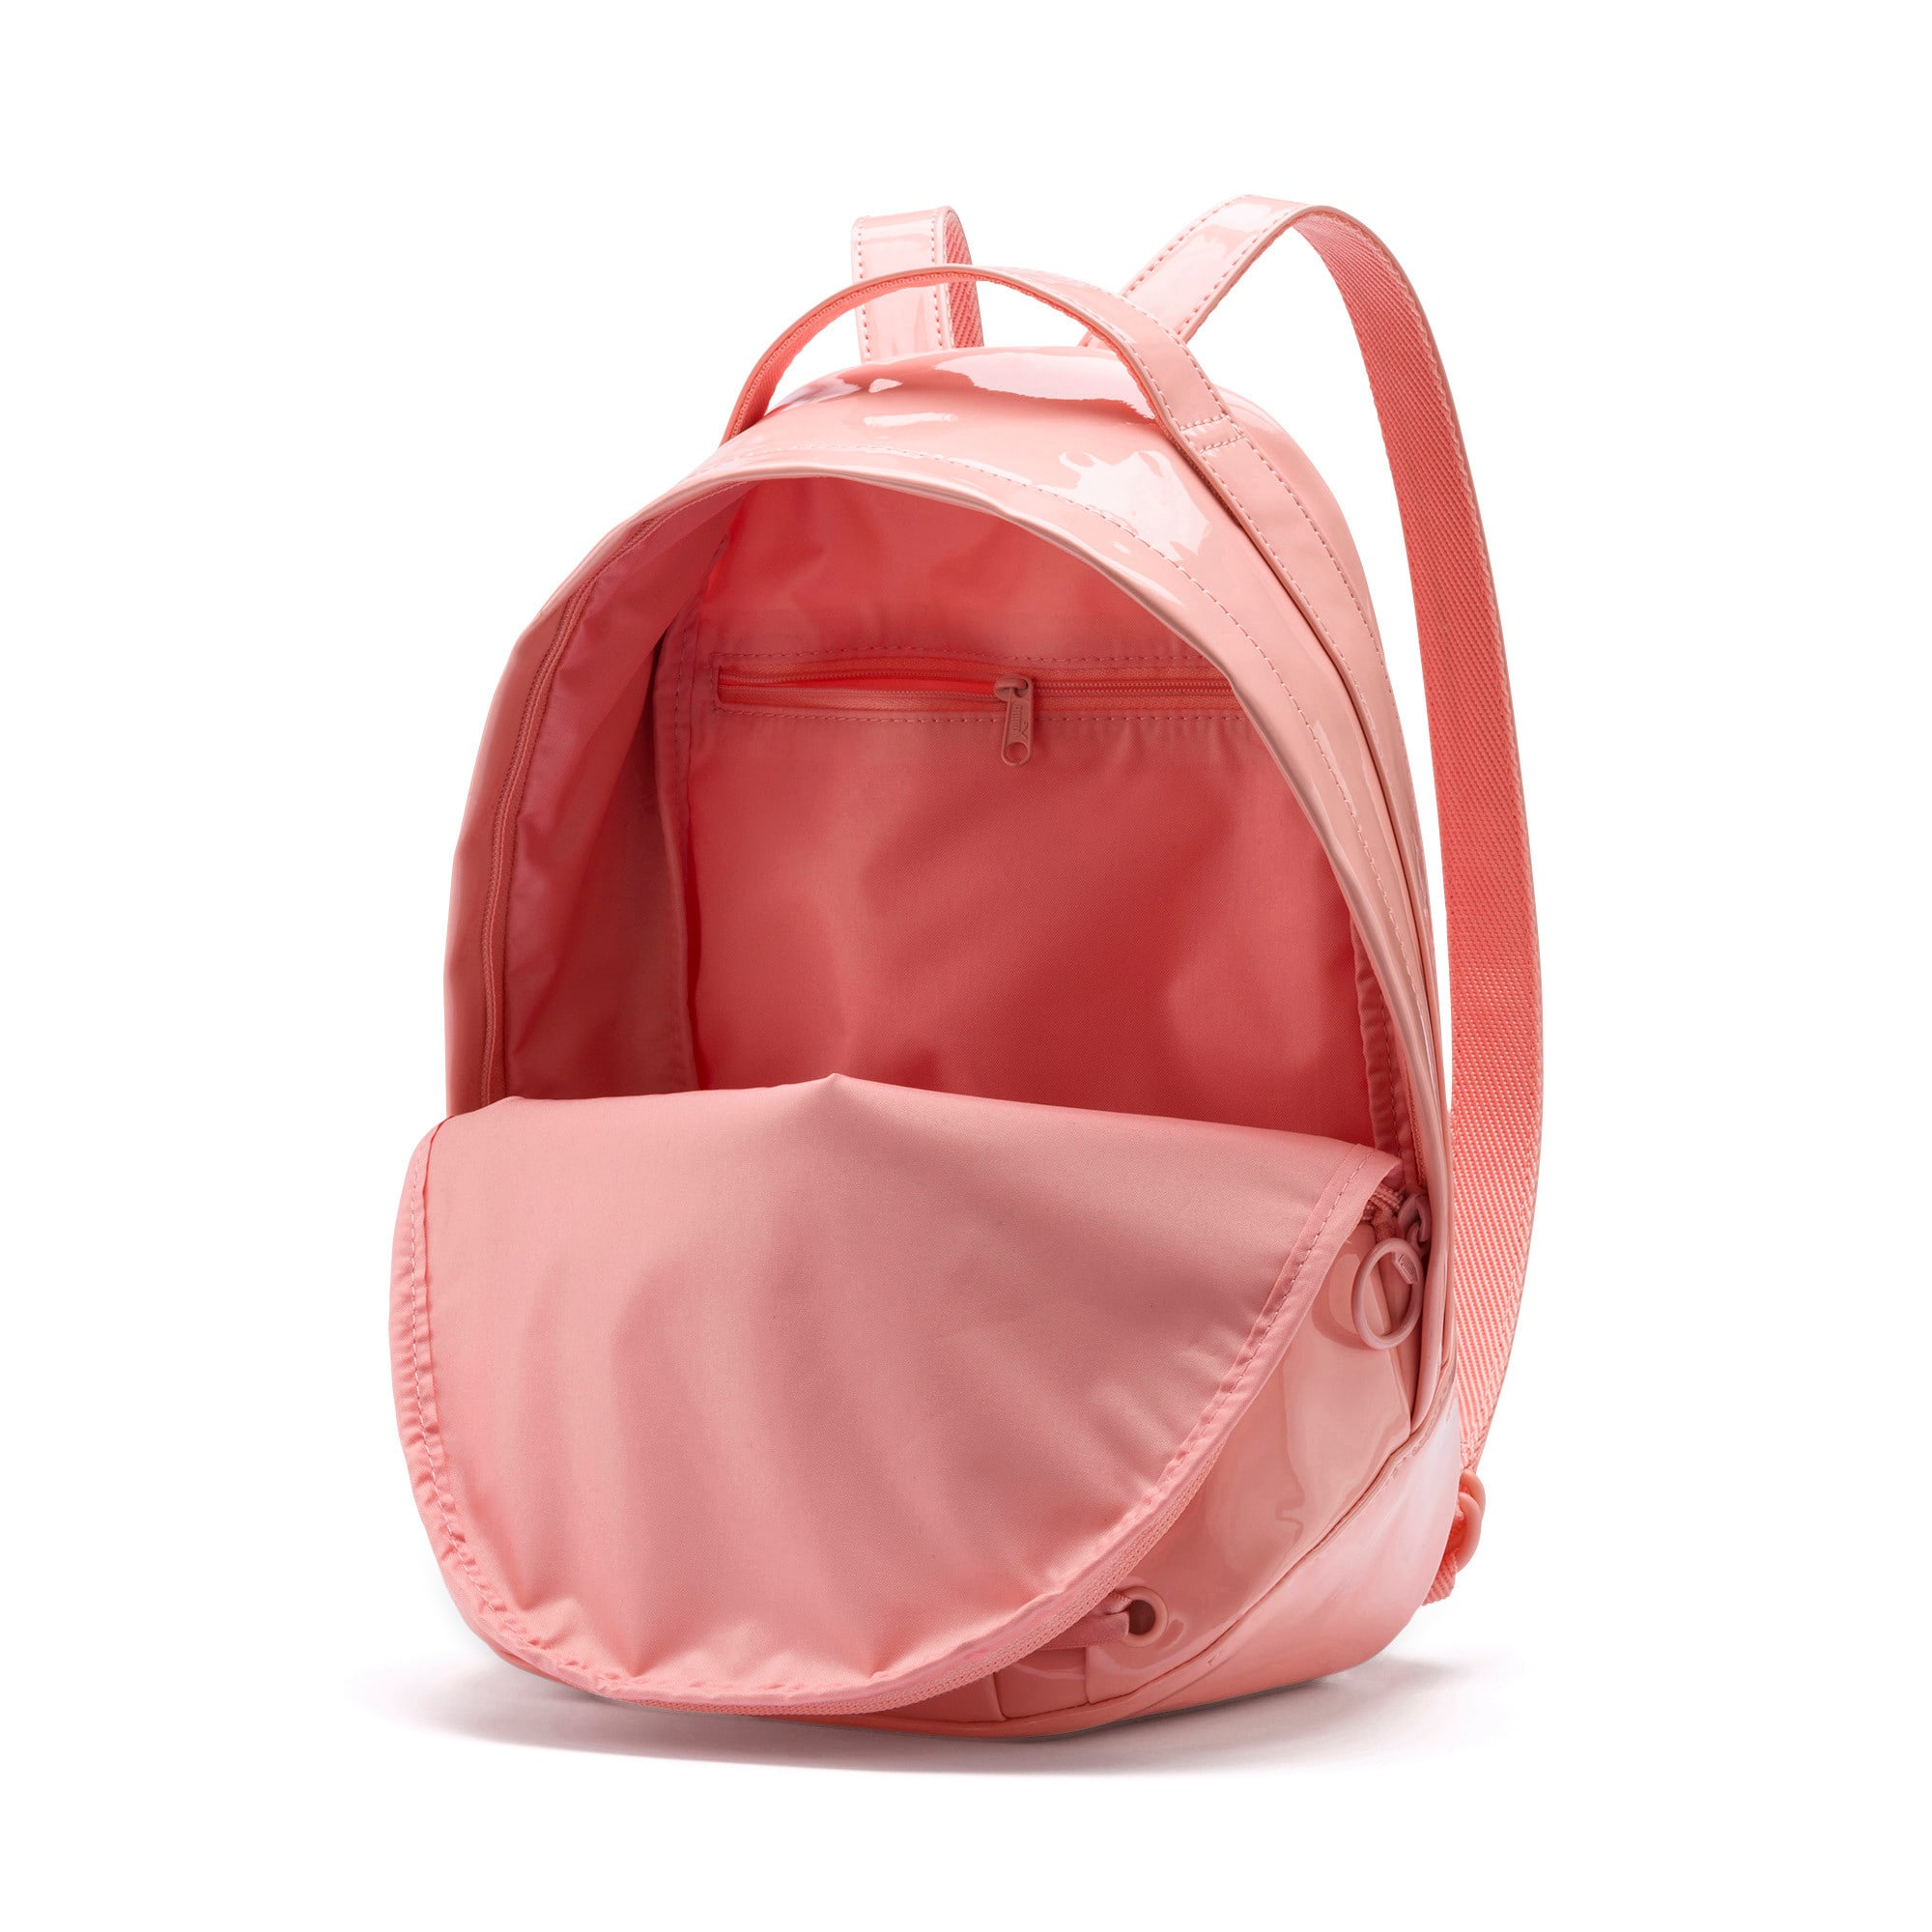 Thumbnail 3 of Prime Archive Crush Backpack, Peach Bud, medium